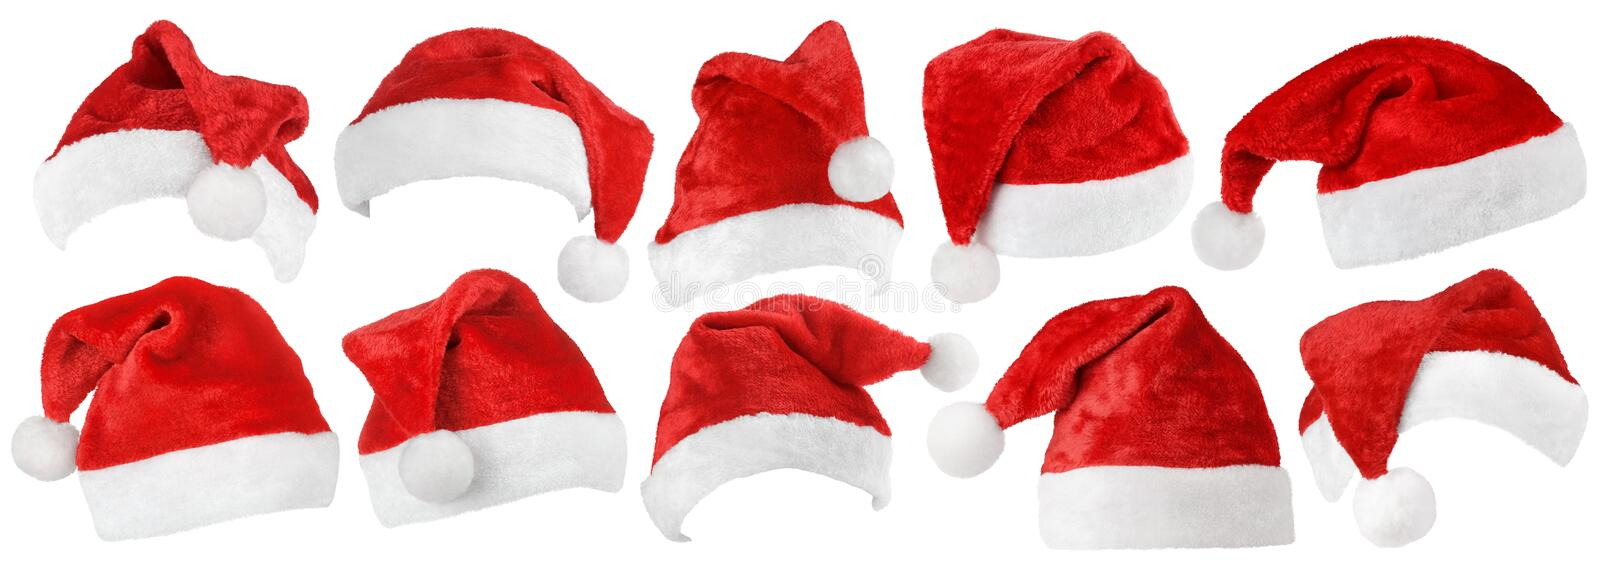 Set of Santa Claus red hats on white stock image